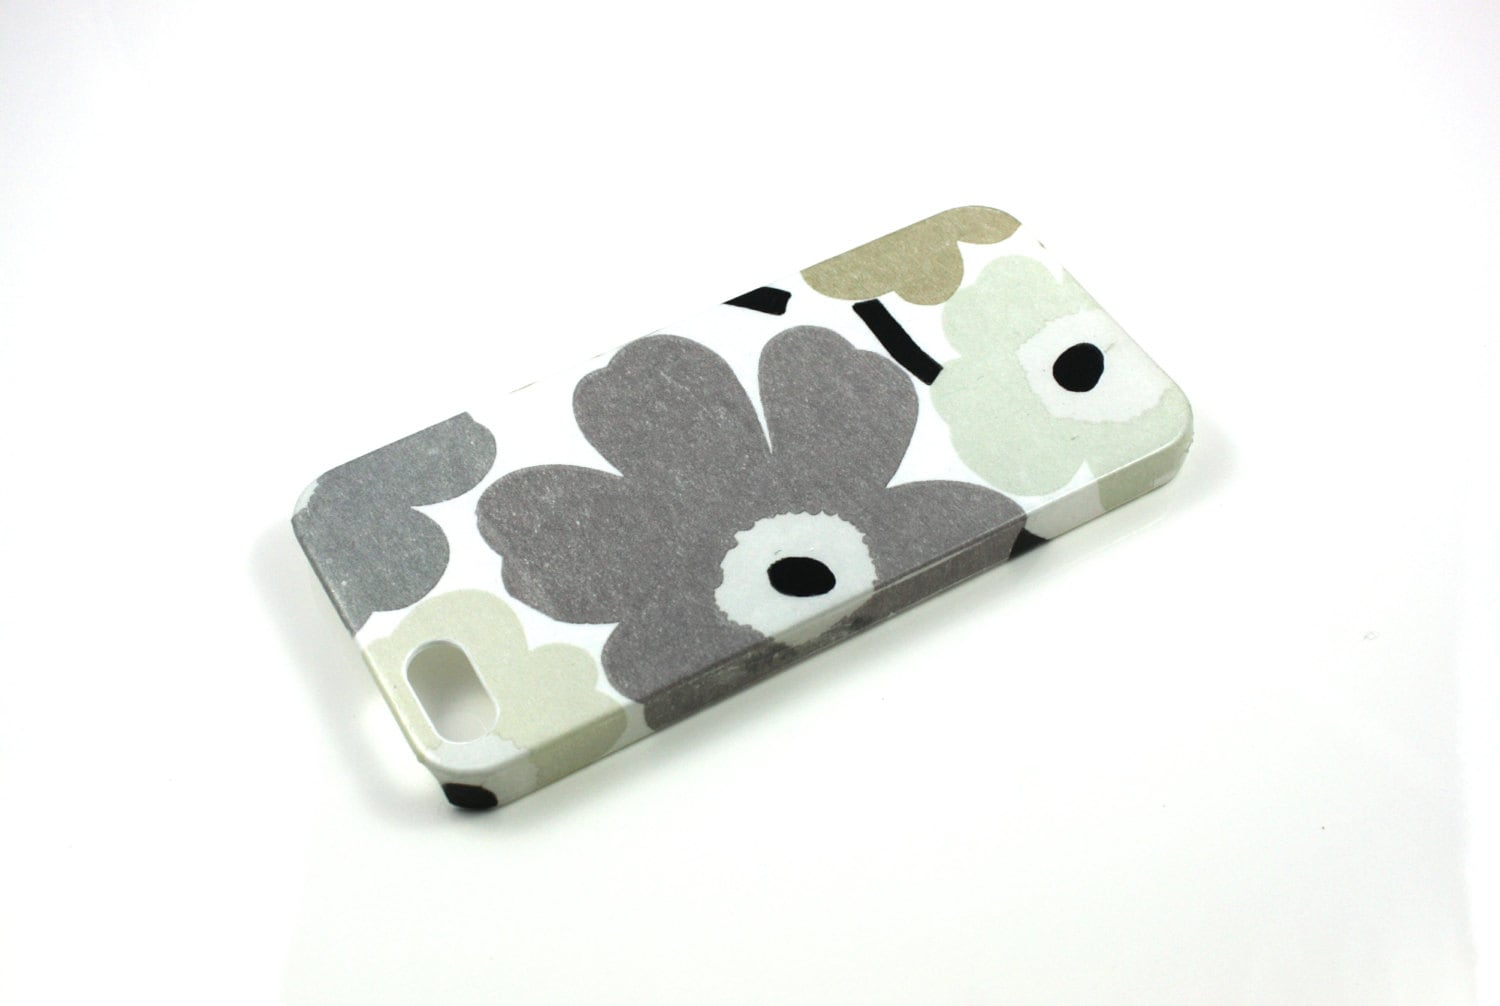 Marimekko Unikko iPhone 7  7 Plus  6  6s  6 Plus  5s  5c  SE  4   4s  iPod classic  iPod Touch 5 hard case wallet